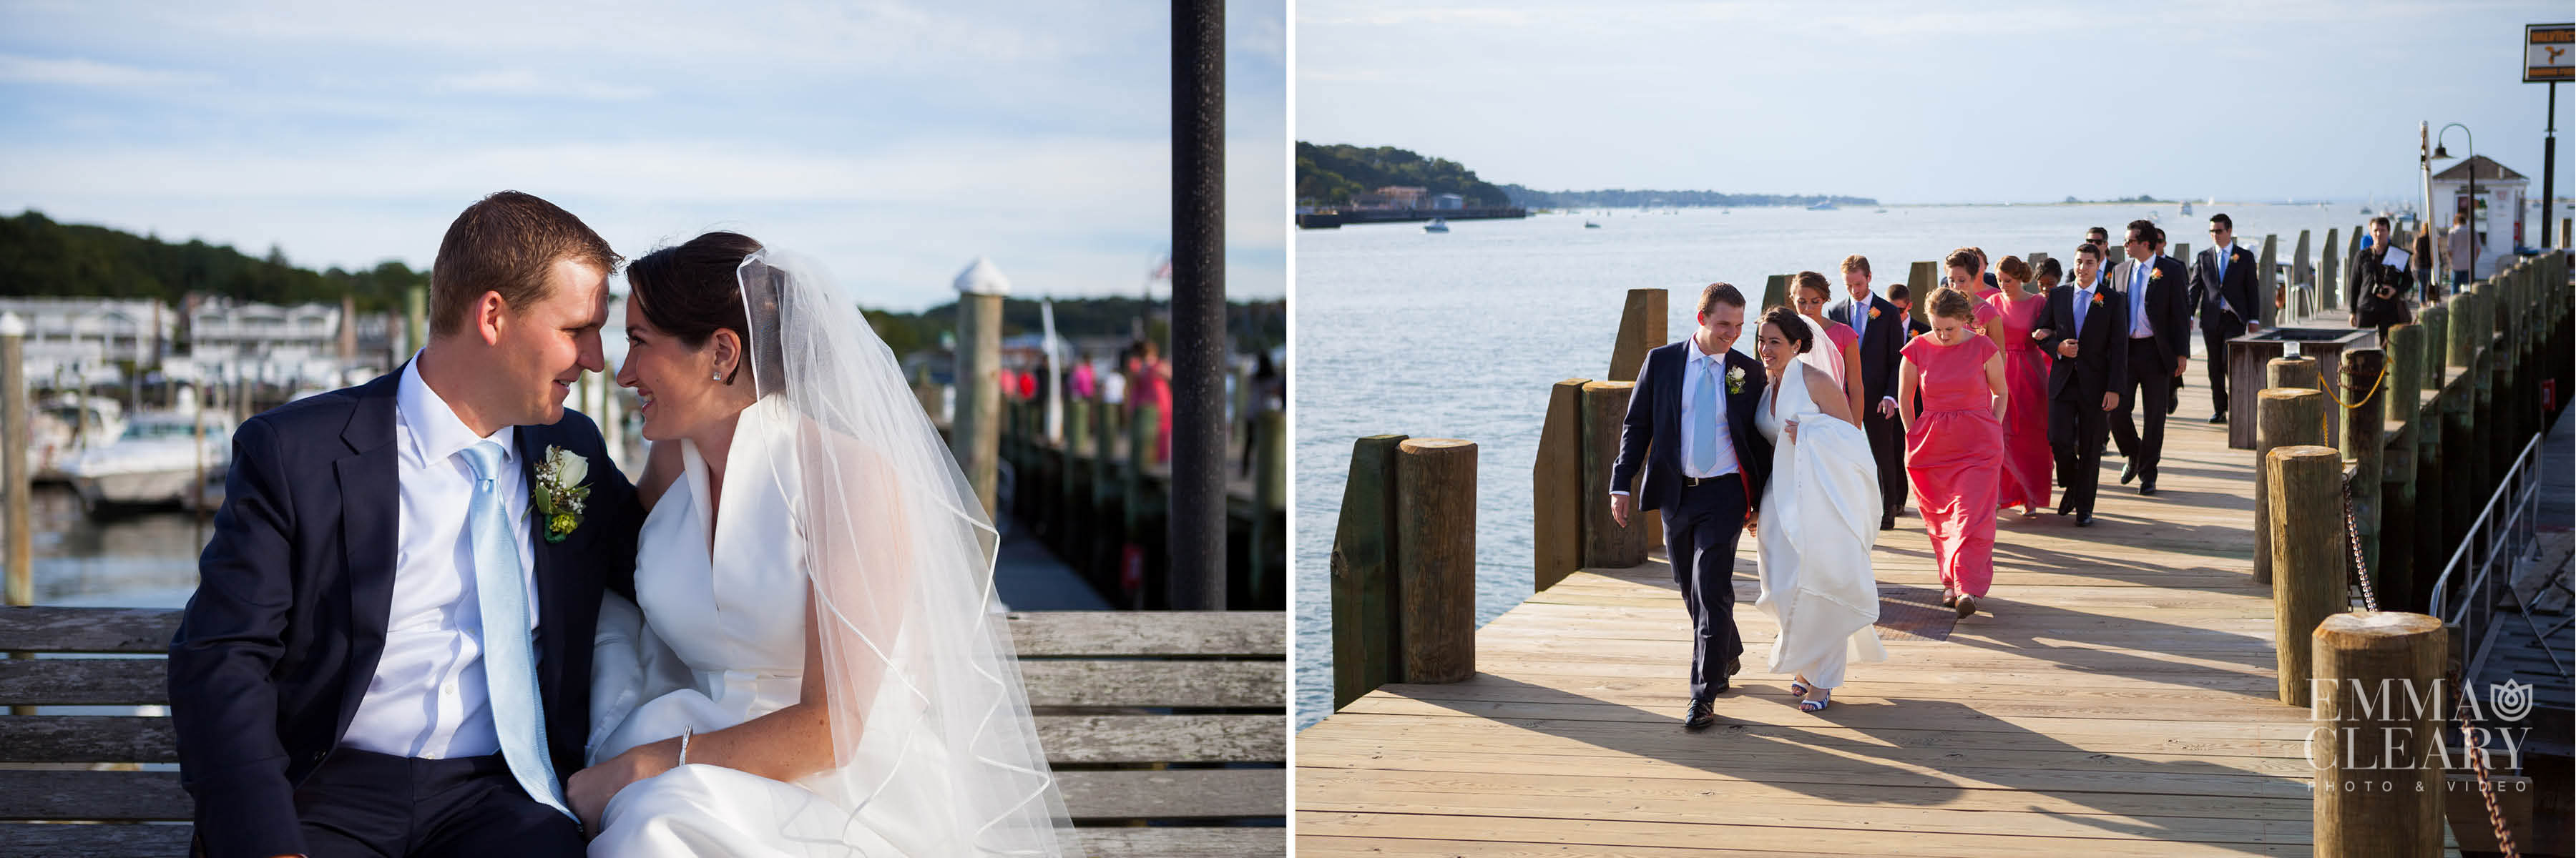 Emma Cleary Photography, Danfords Marina wedding11